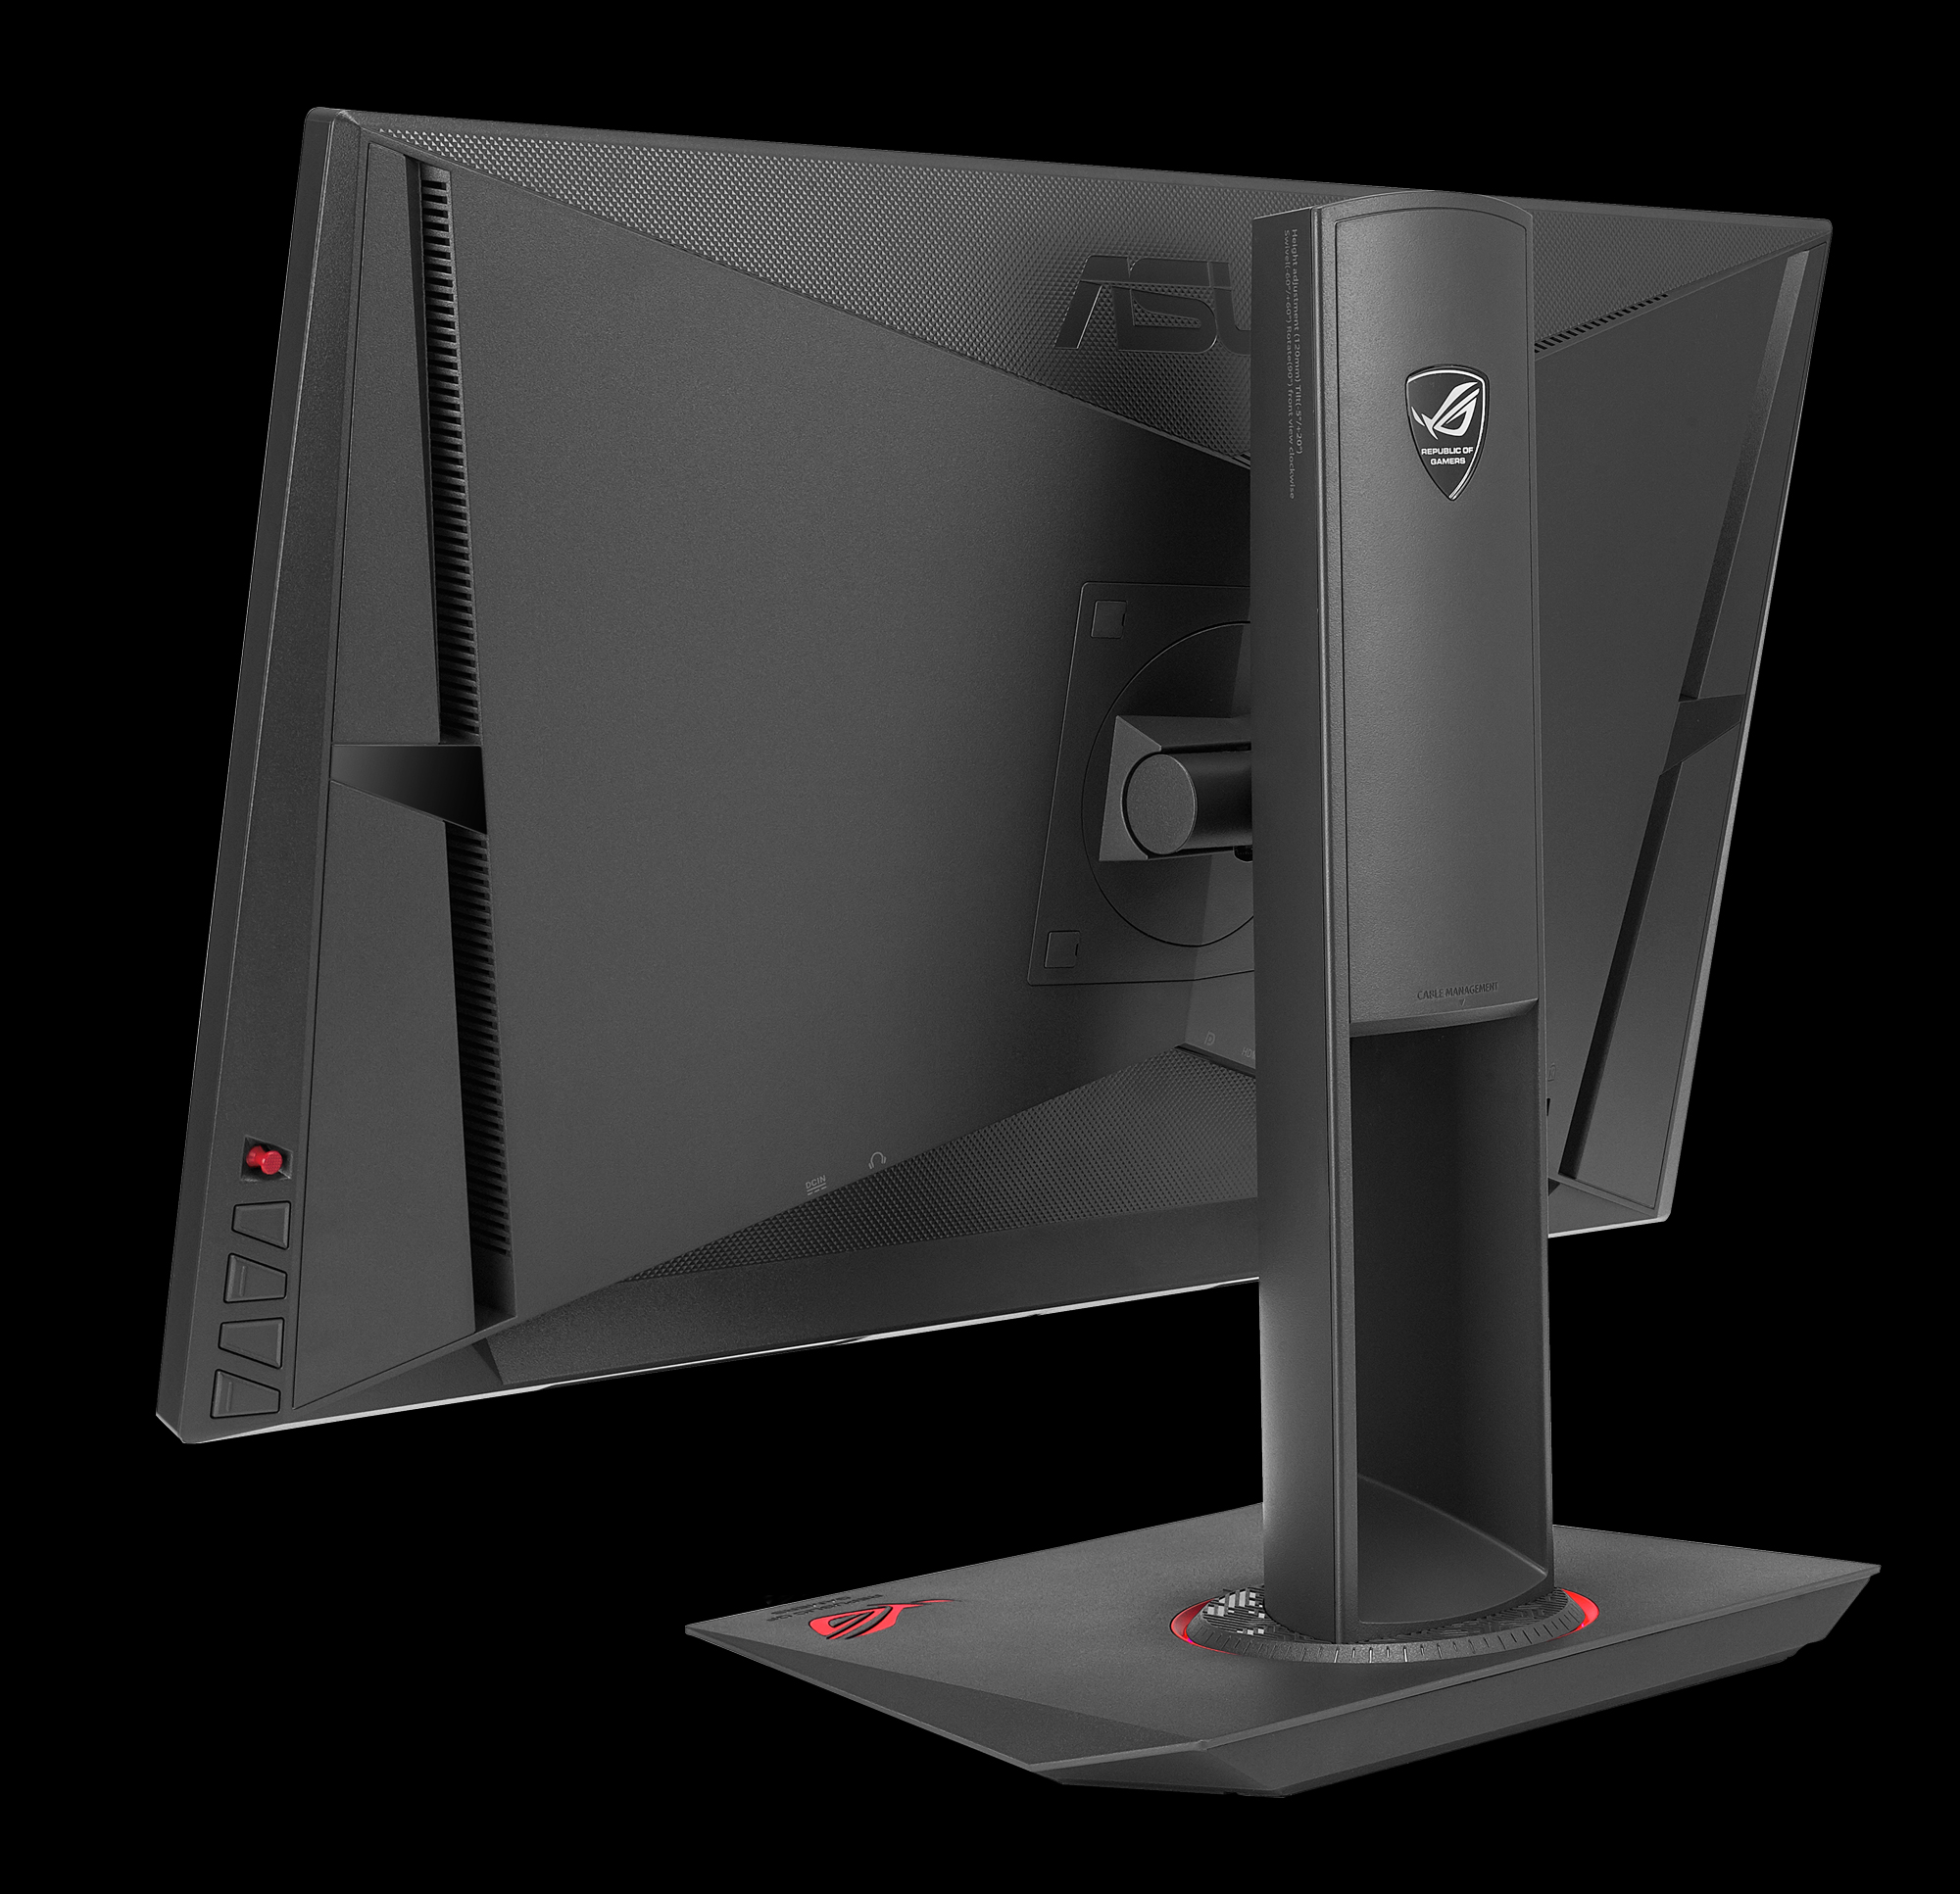 ASUS Republic Of Gamers Announces Swift PG279Q And Swift